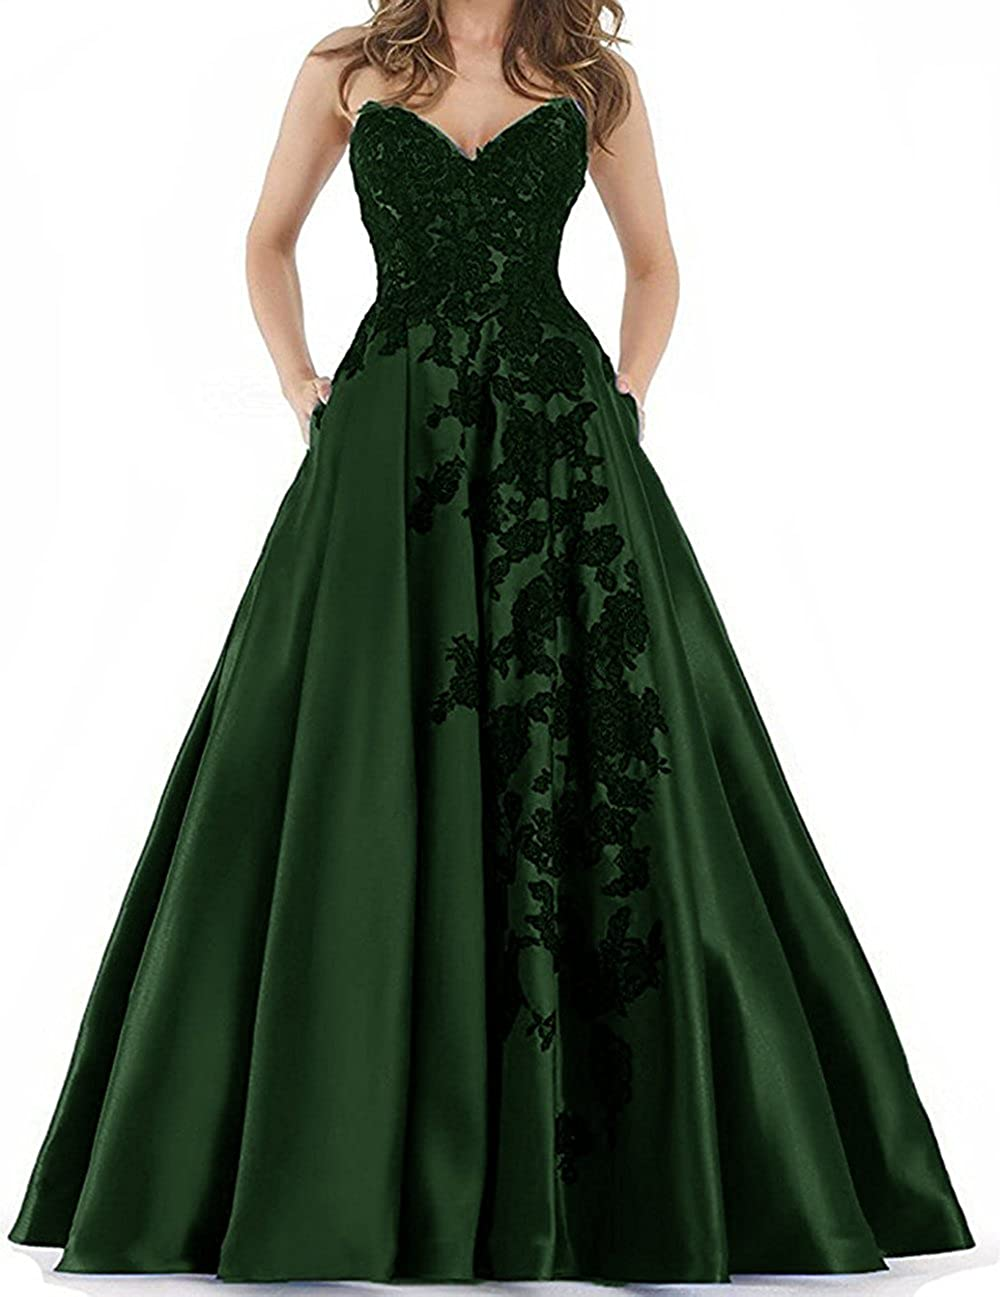 Dark Green YNQNFS Sweetheart lace Applique Prom Dresses with Pockets Long Satin Evening Party Ball